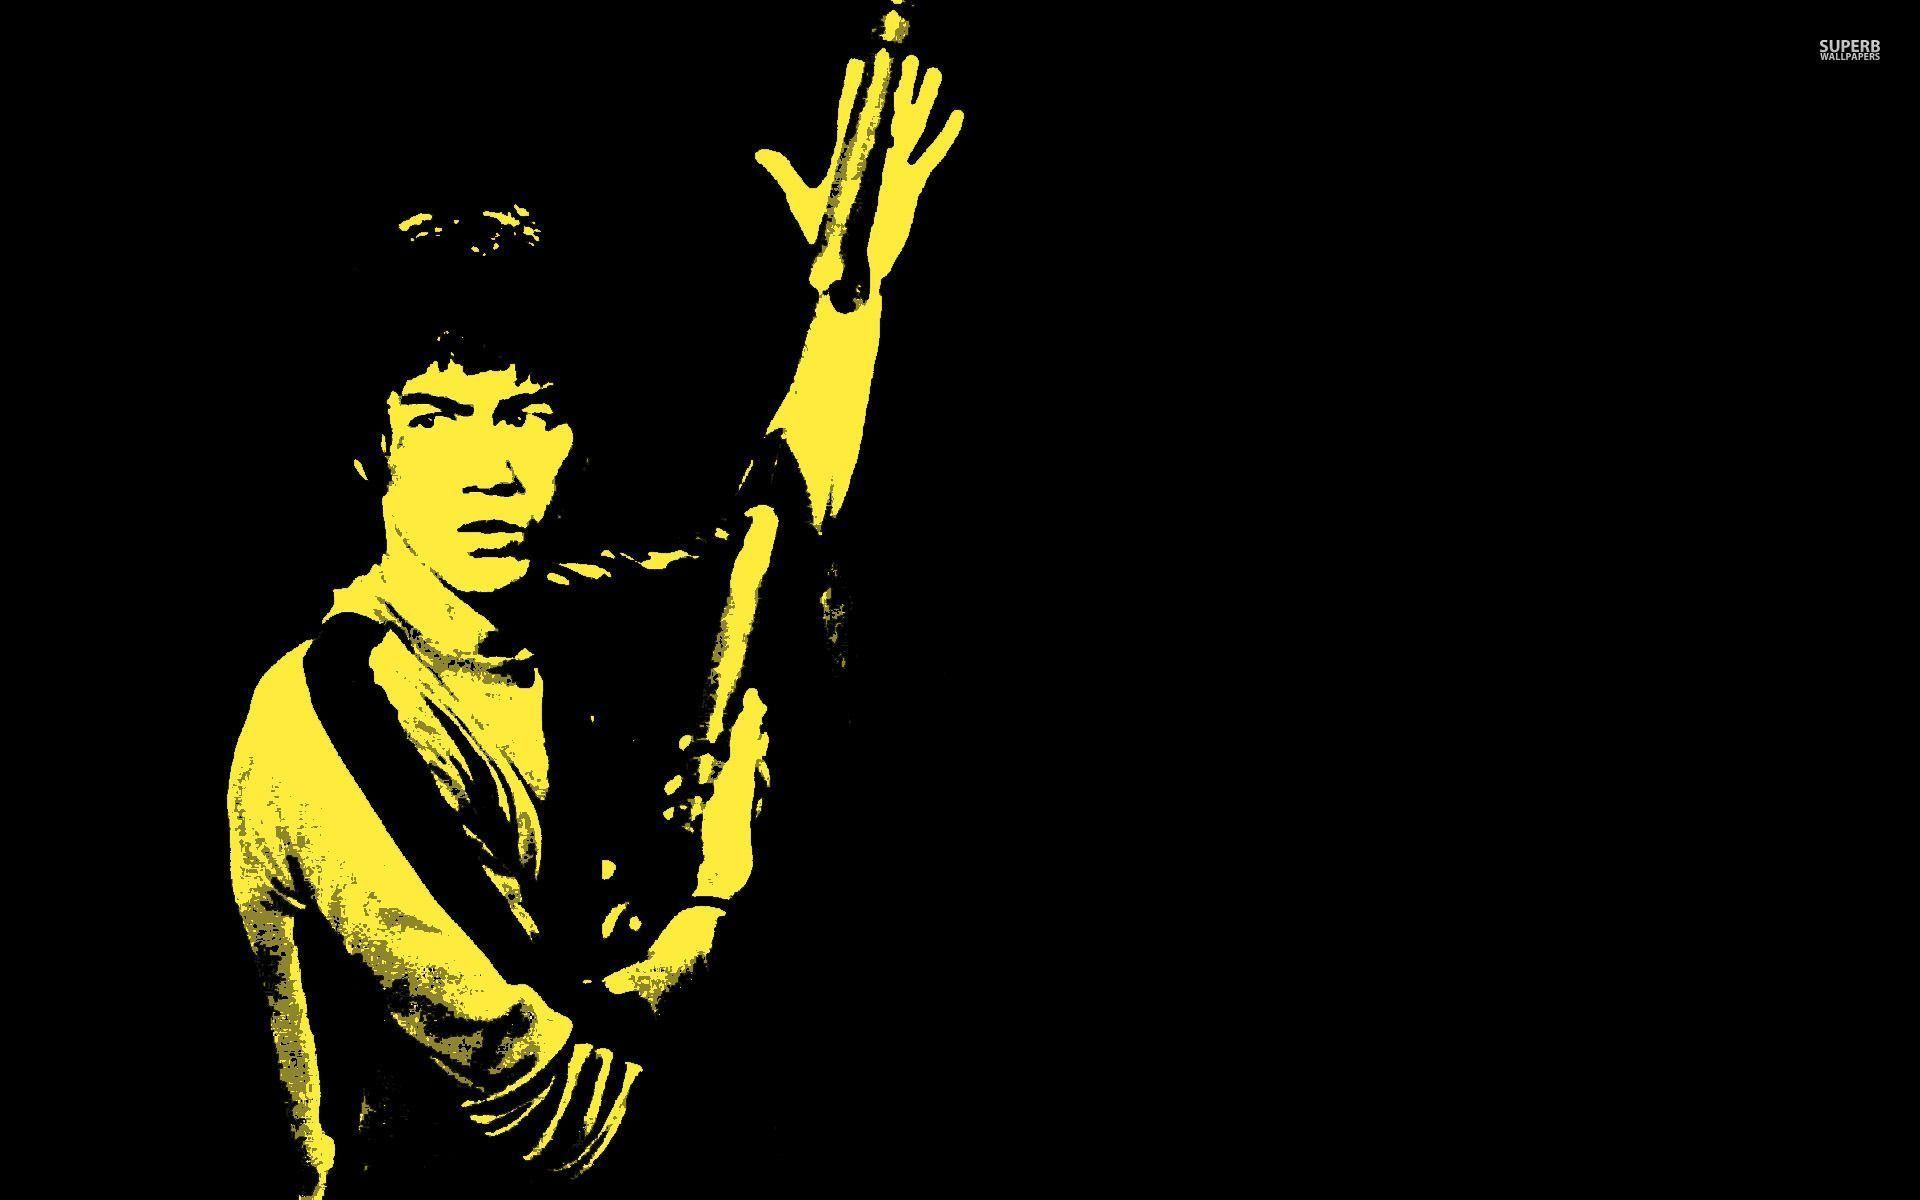 Bruce Lee Wallpapers - Full HD wallpaper search